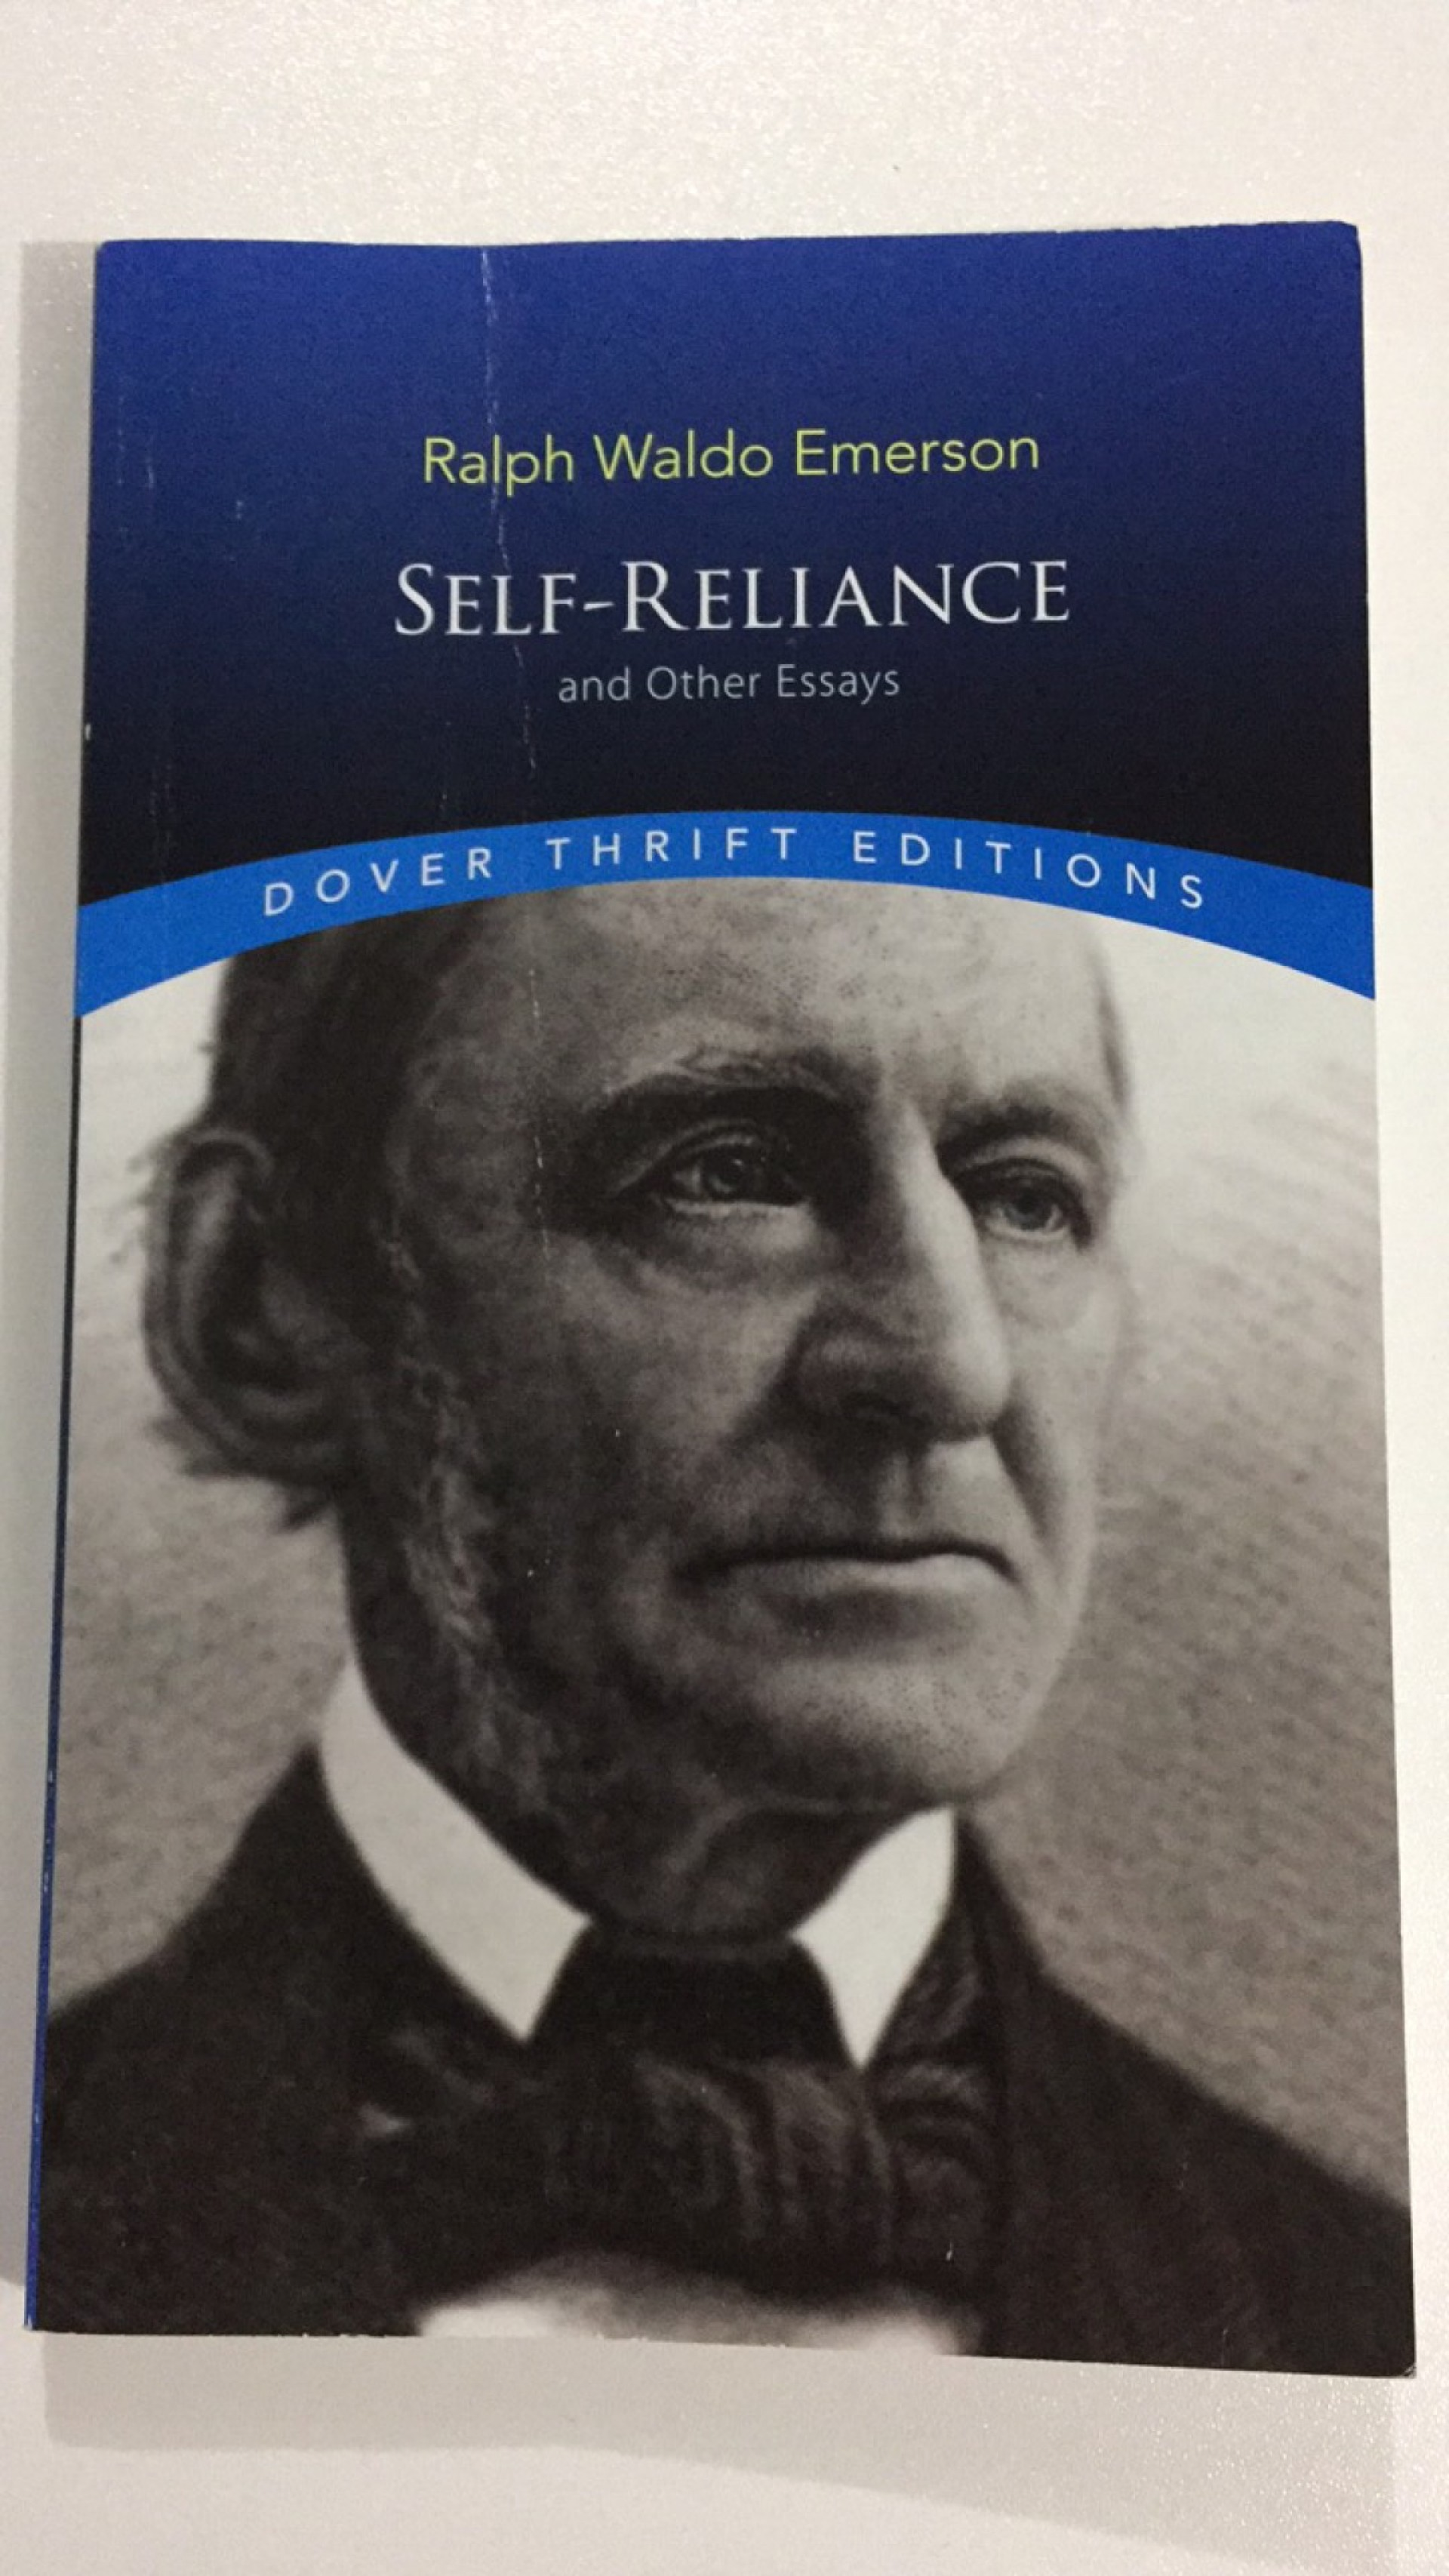 007 Emerson Self Reliance Essay Example By Ralph Waldo Staggering Summary Translated Into Modern English Analysis 1920